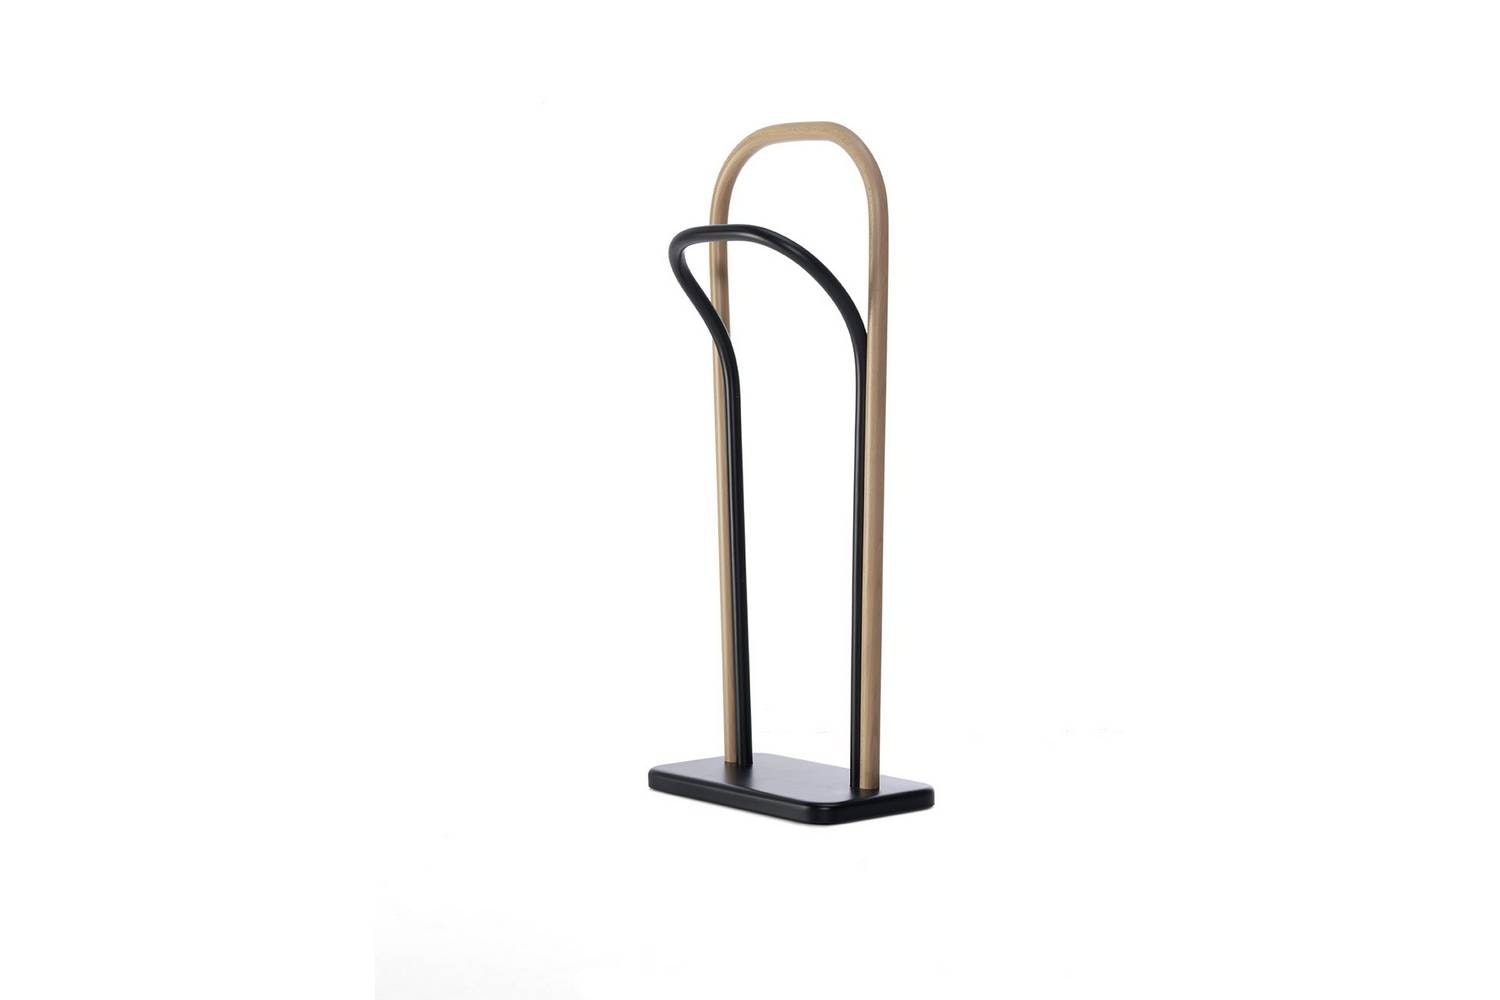 Arch Clothes Valet by Front for Wiener GTV Design